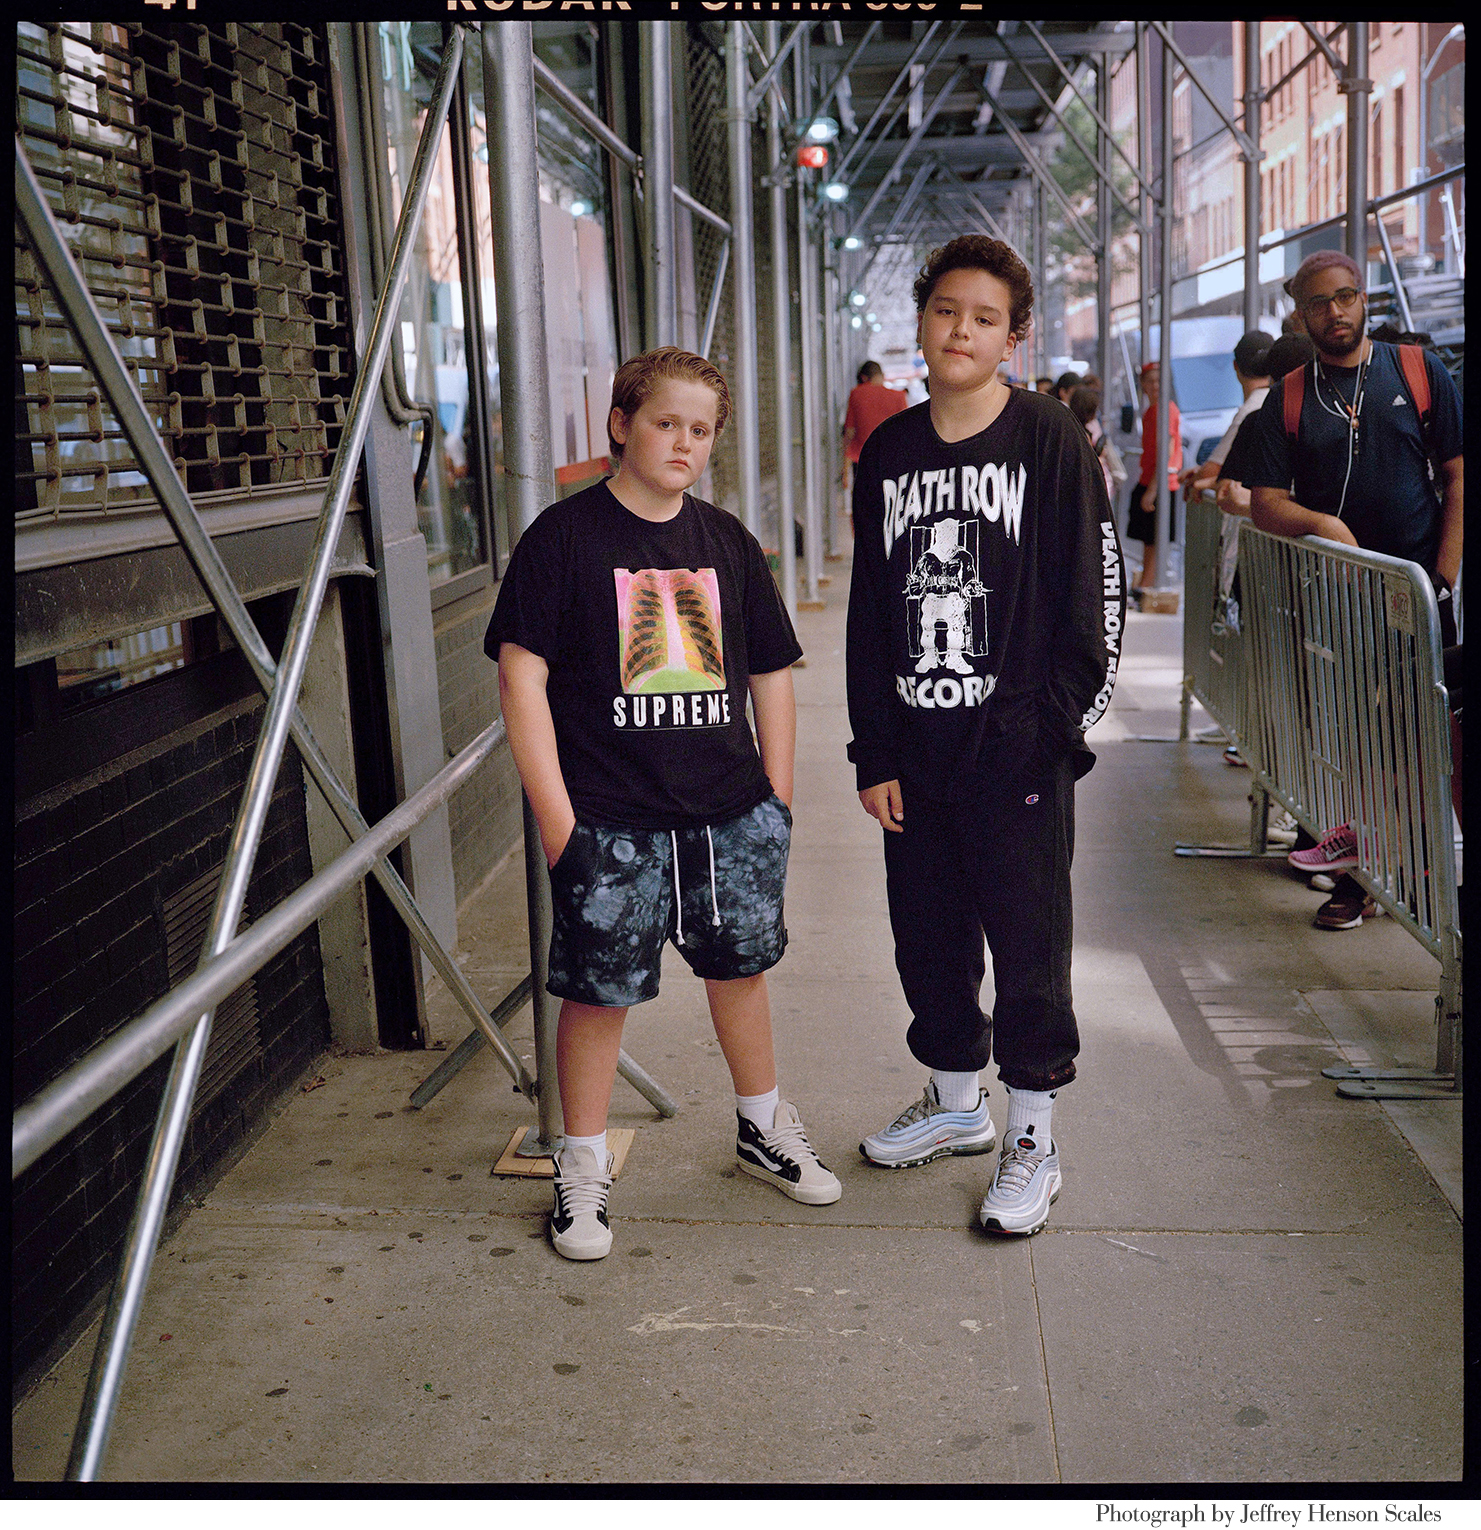 The Look _ New York Times_ Rebecca Pietri Stylist _ Casting _ Jeffery Henson Scale Photgrapher_Eve Lyon Editor_ New Geeks_Article_Nom Core- Youth Fashion_ Supreme_Palace_Vans_Street fashion _ Soho_ Teens_ Two Boys_ Shot .JPG